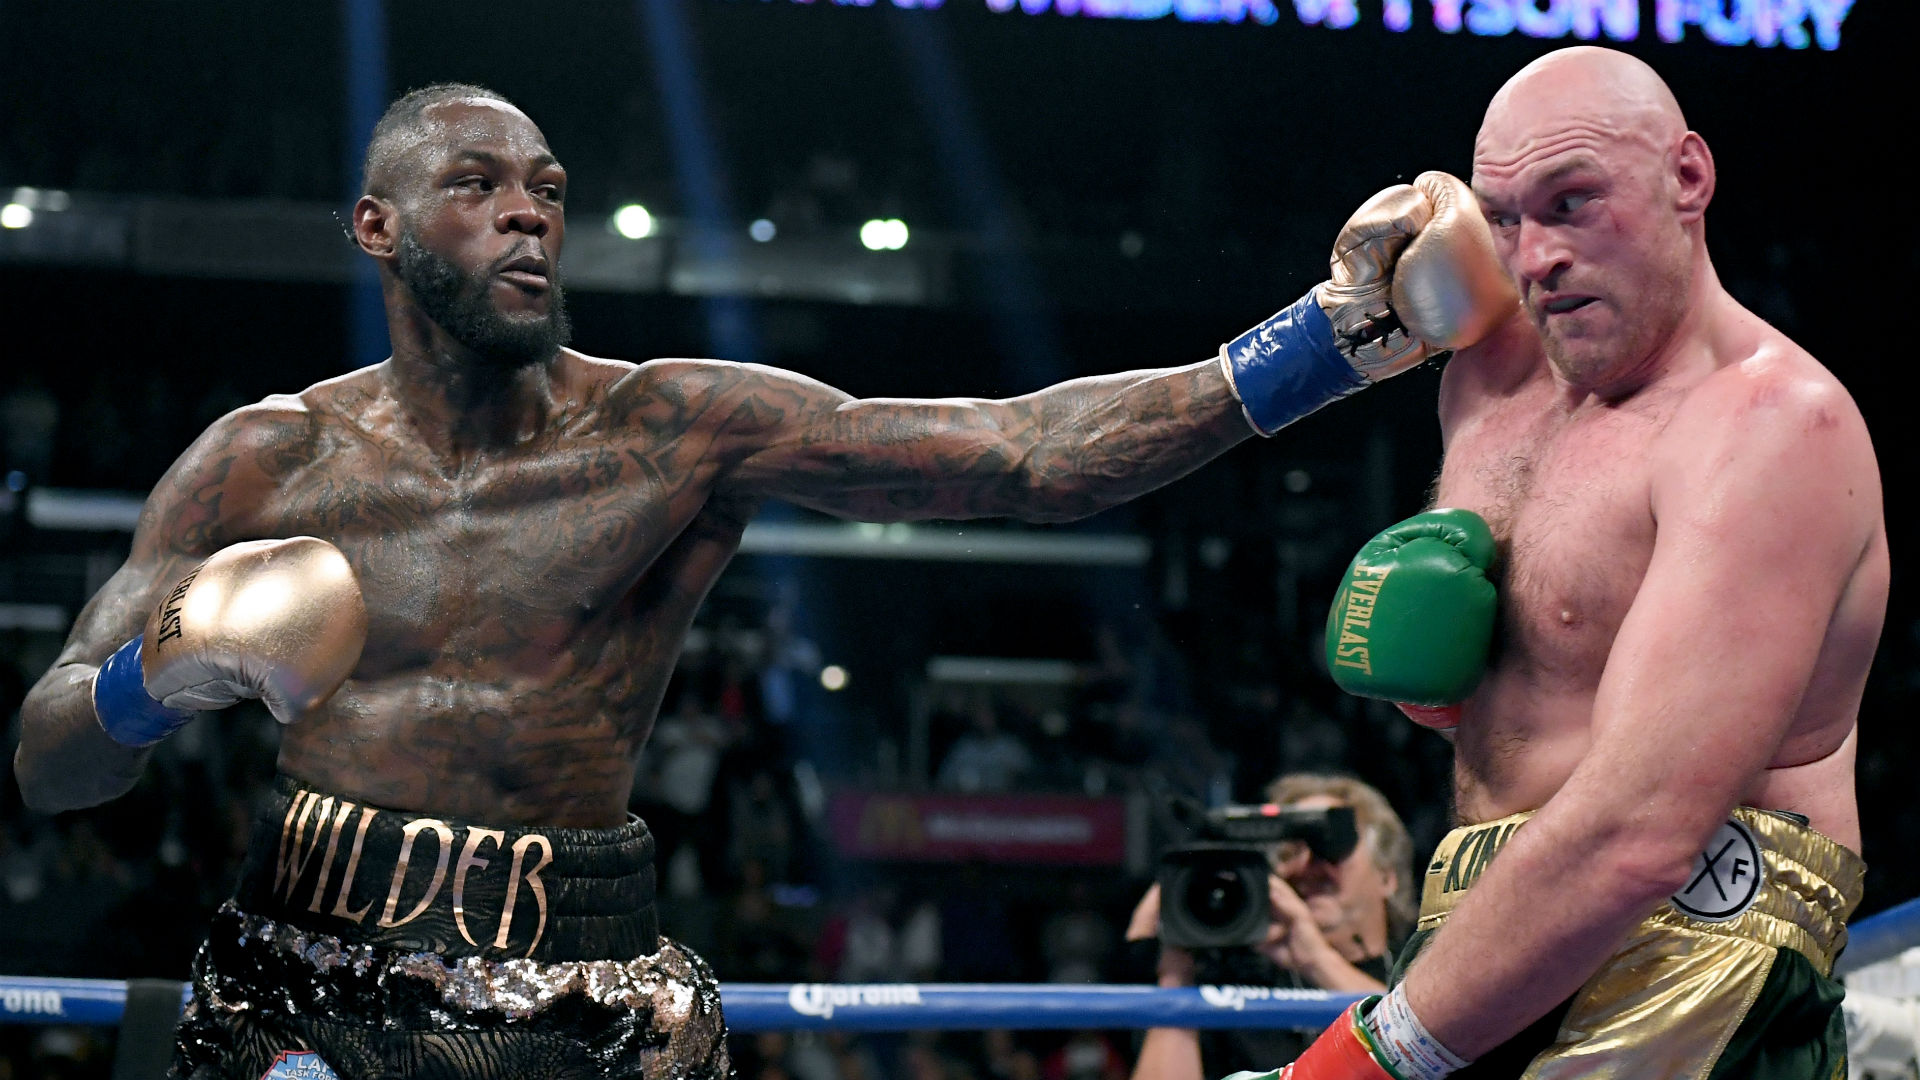 Tyson Fury to Deontay Wilder: 'Nothing more than a puncher's chance' - Fury